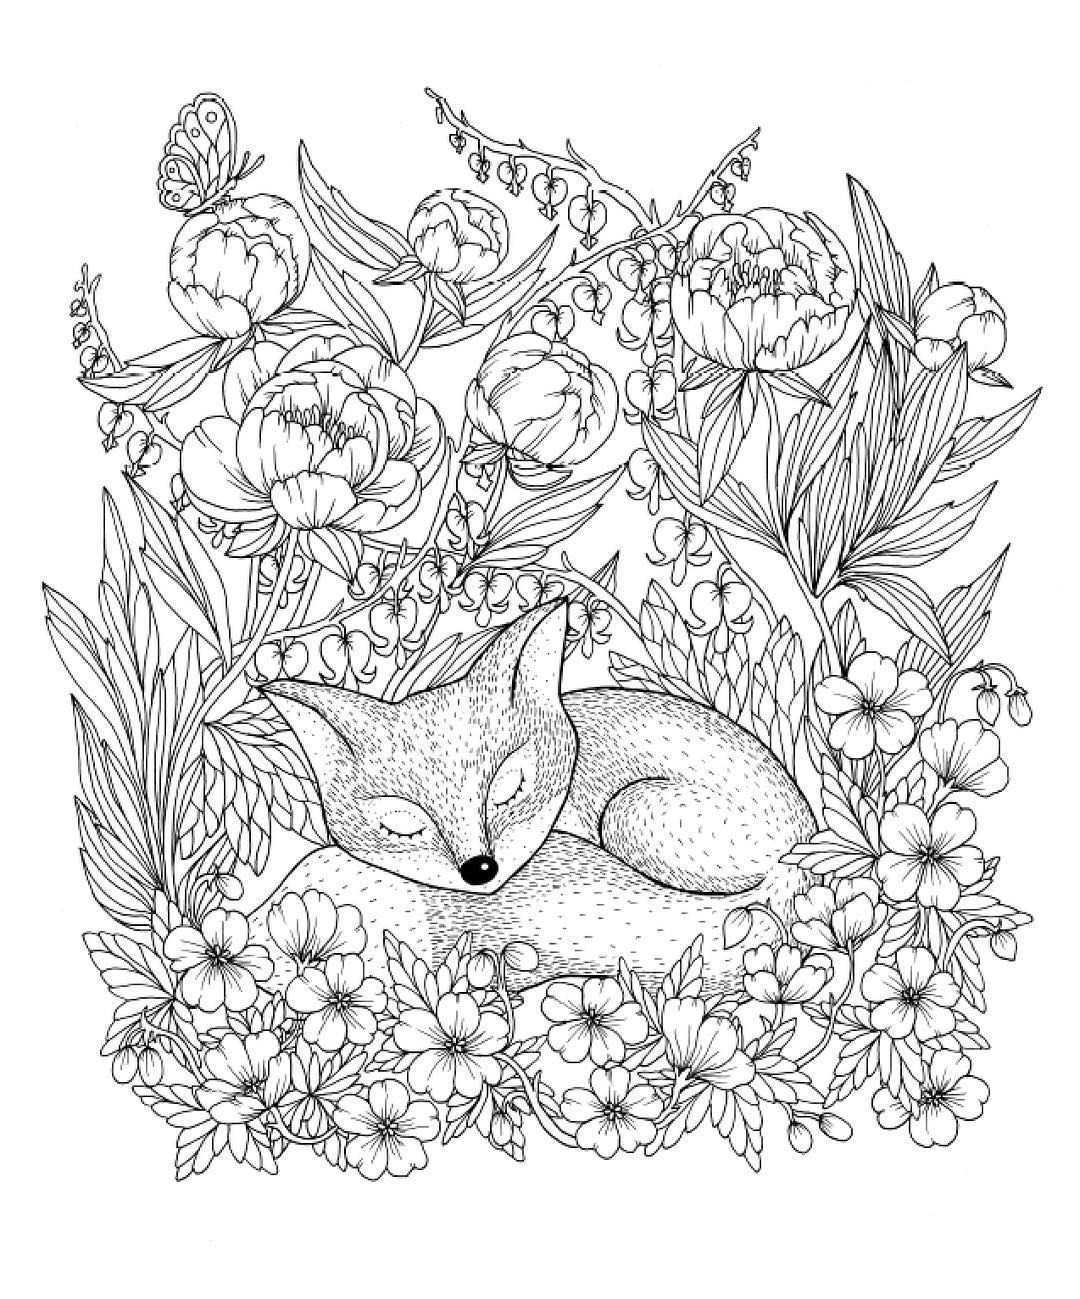 Maria Trolle On Instagram Sleeping Fox From My Upcoming Coloringbook Release 25th Of March Just A Fe Fox Coloring Page Animal Coloring Pages Coloring Pages